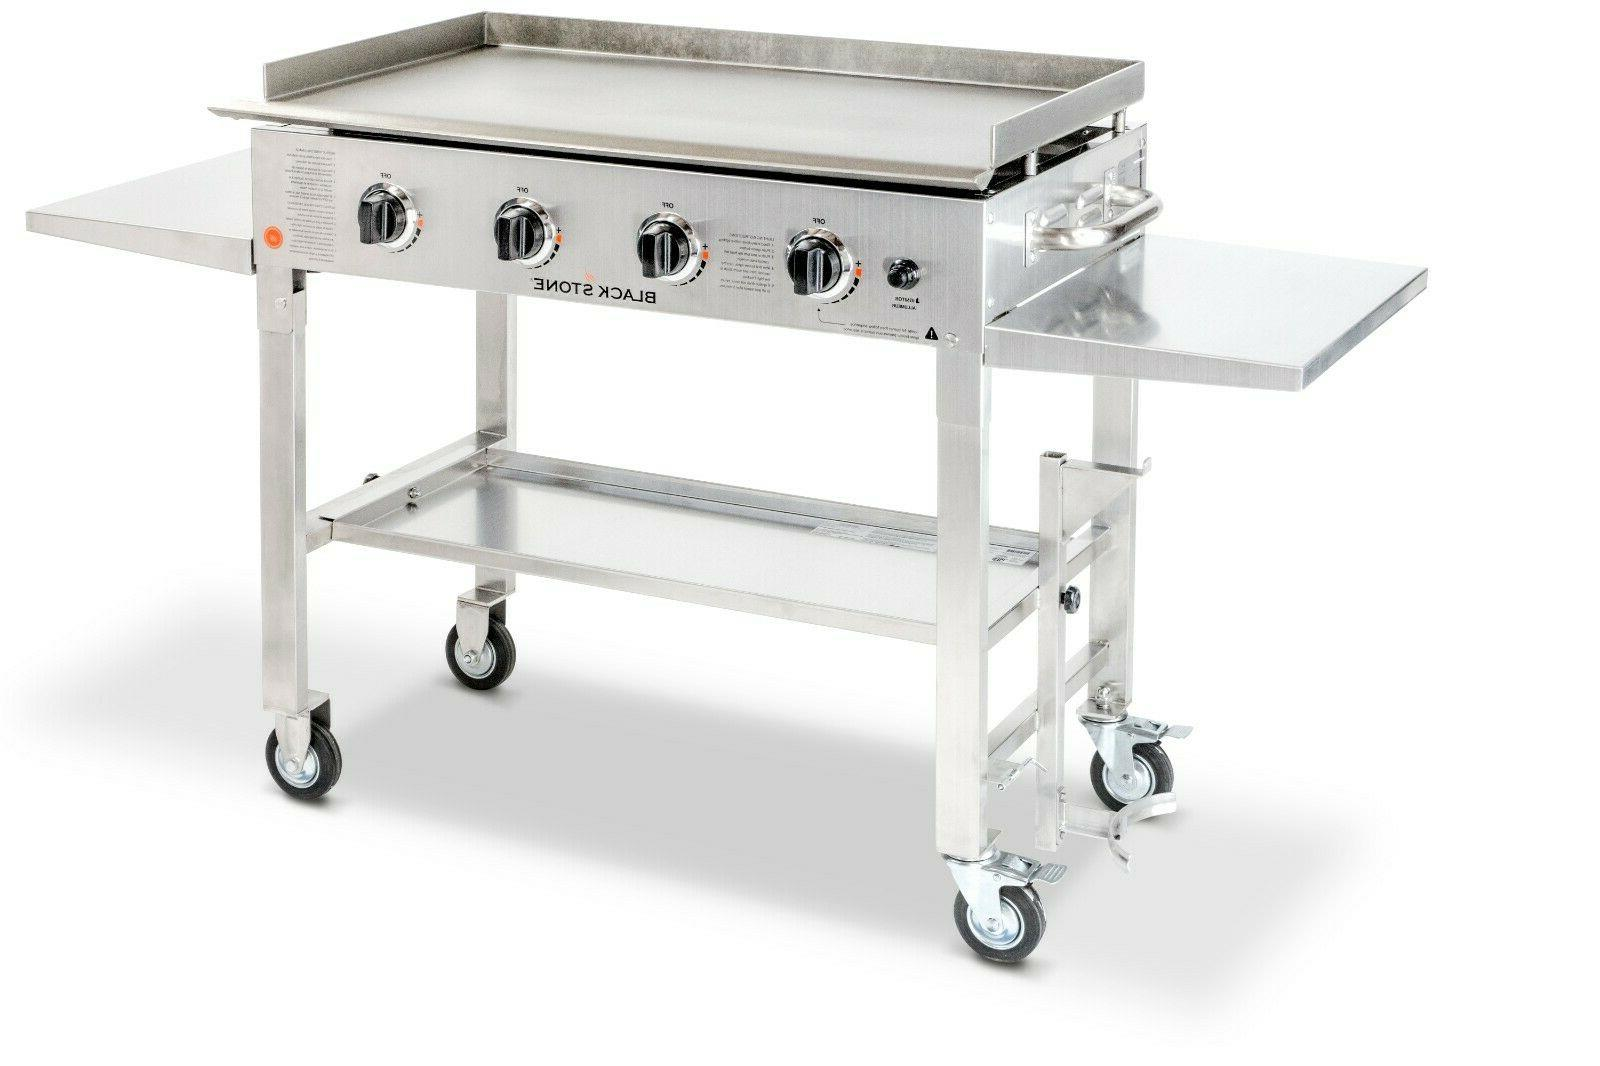 36 outdoor flat top gas grill griddle